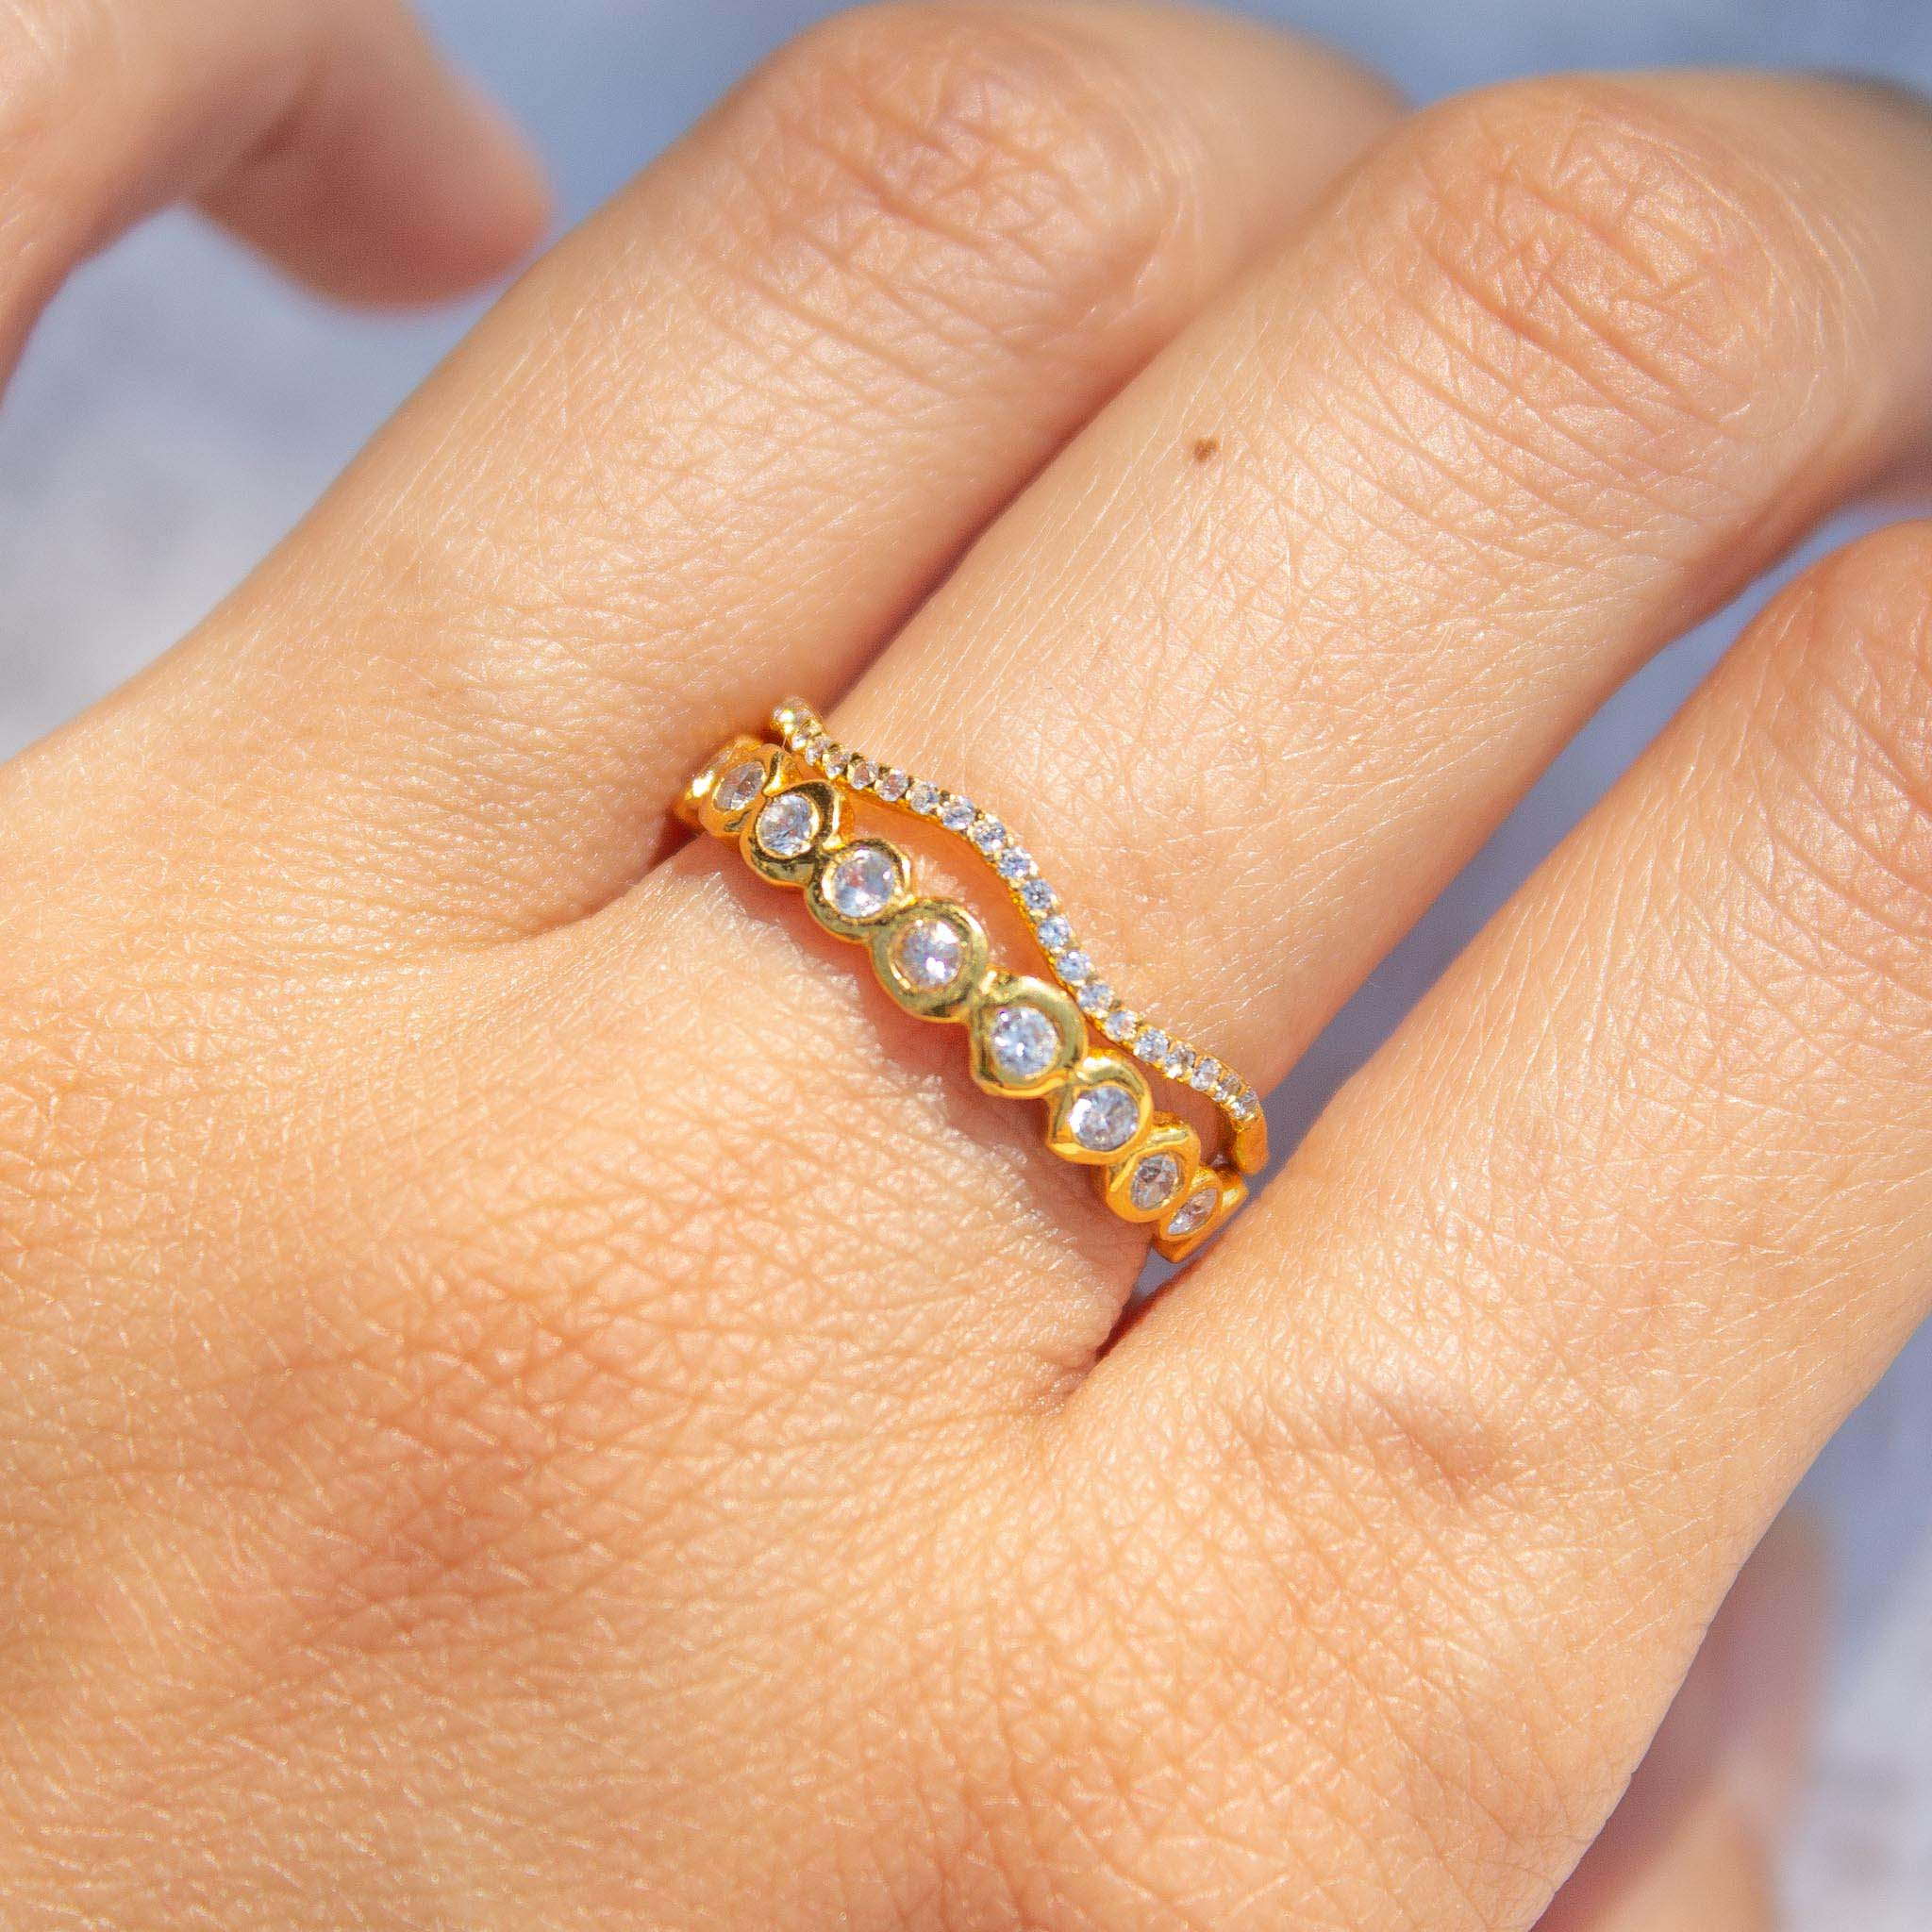 Dainty stacking ring ideas